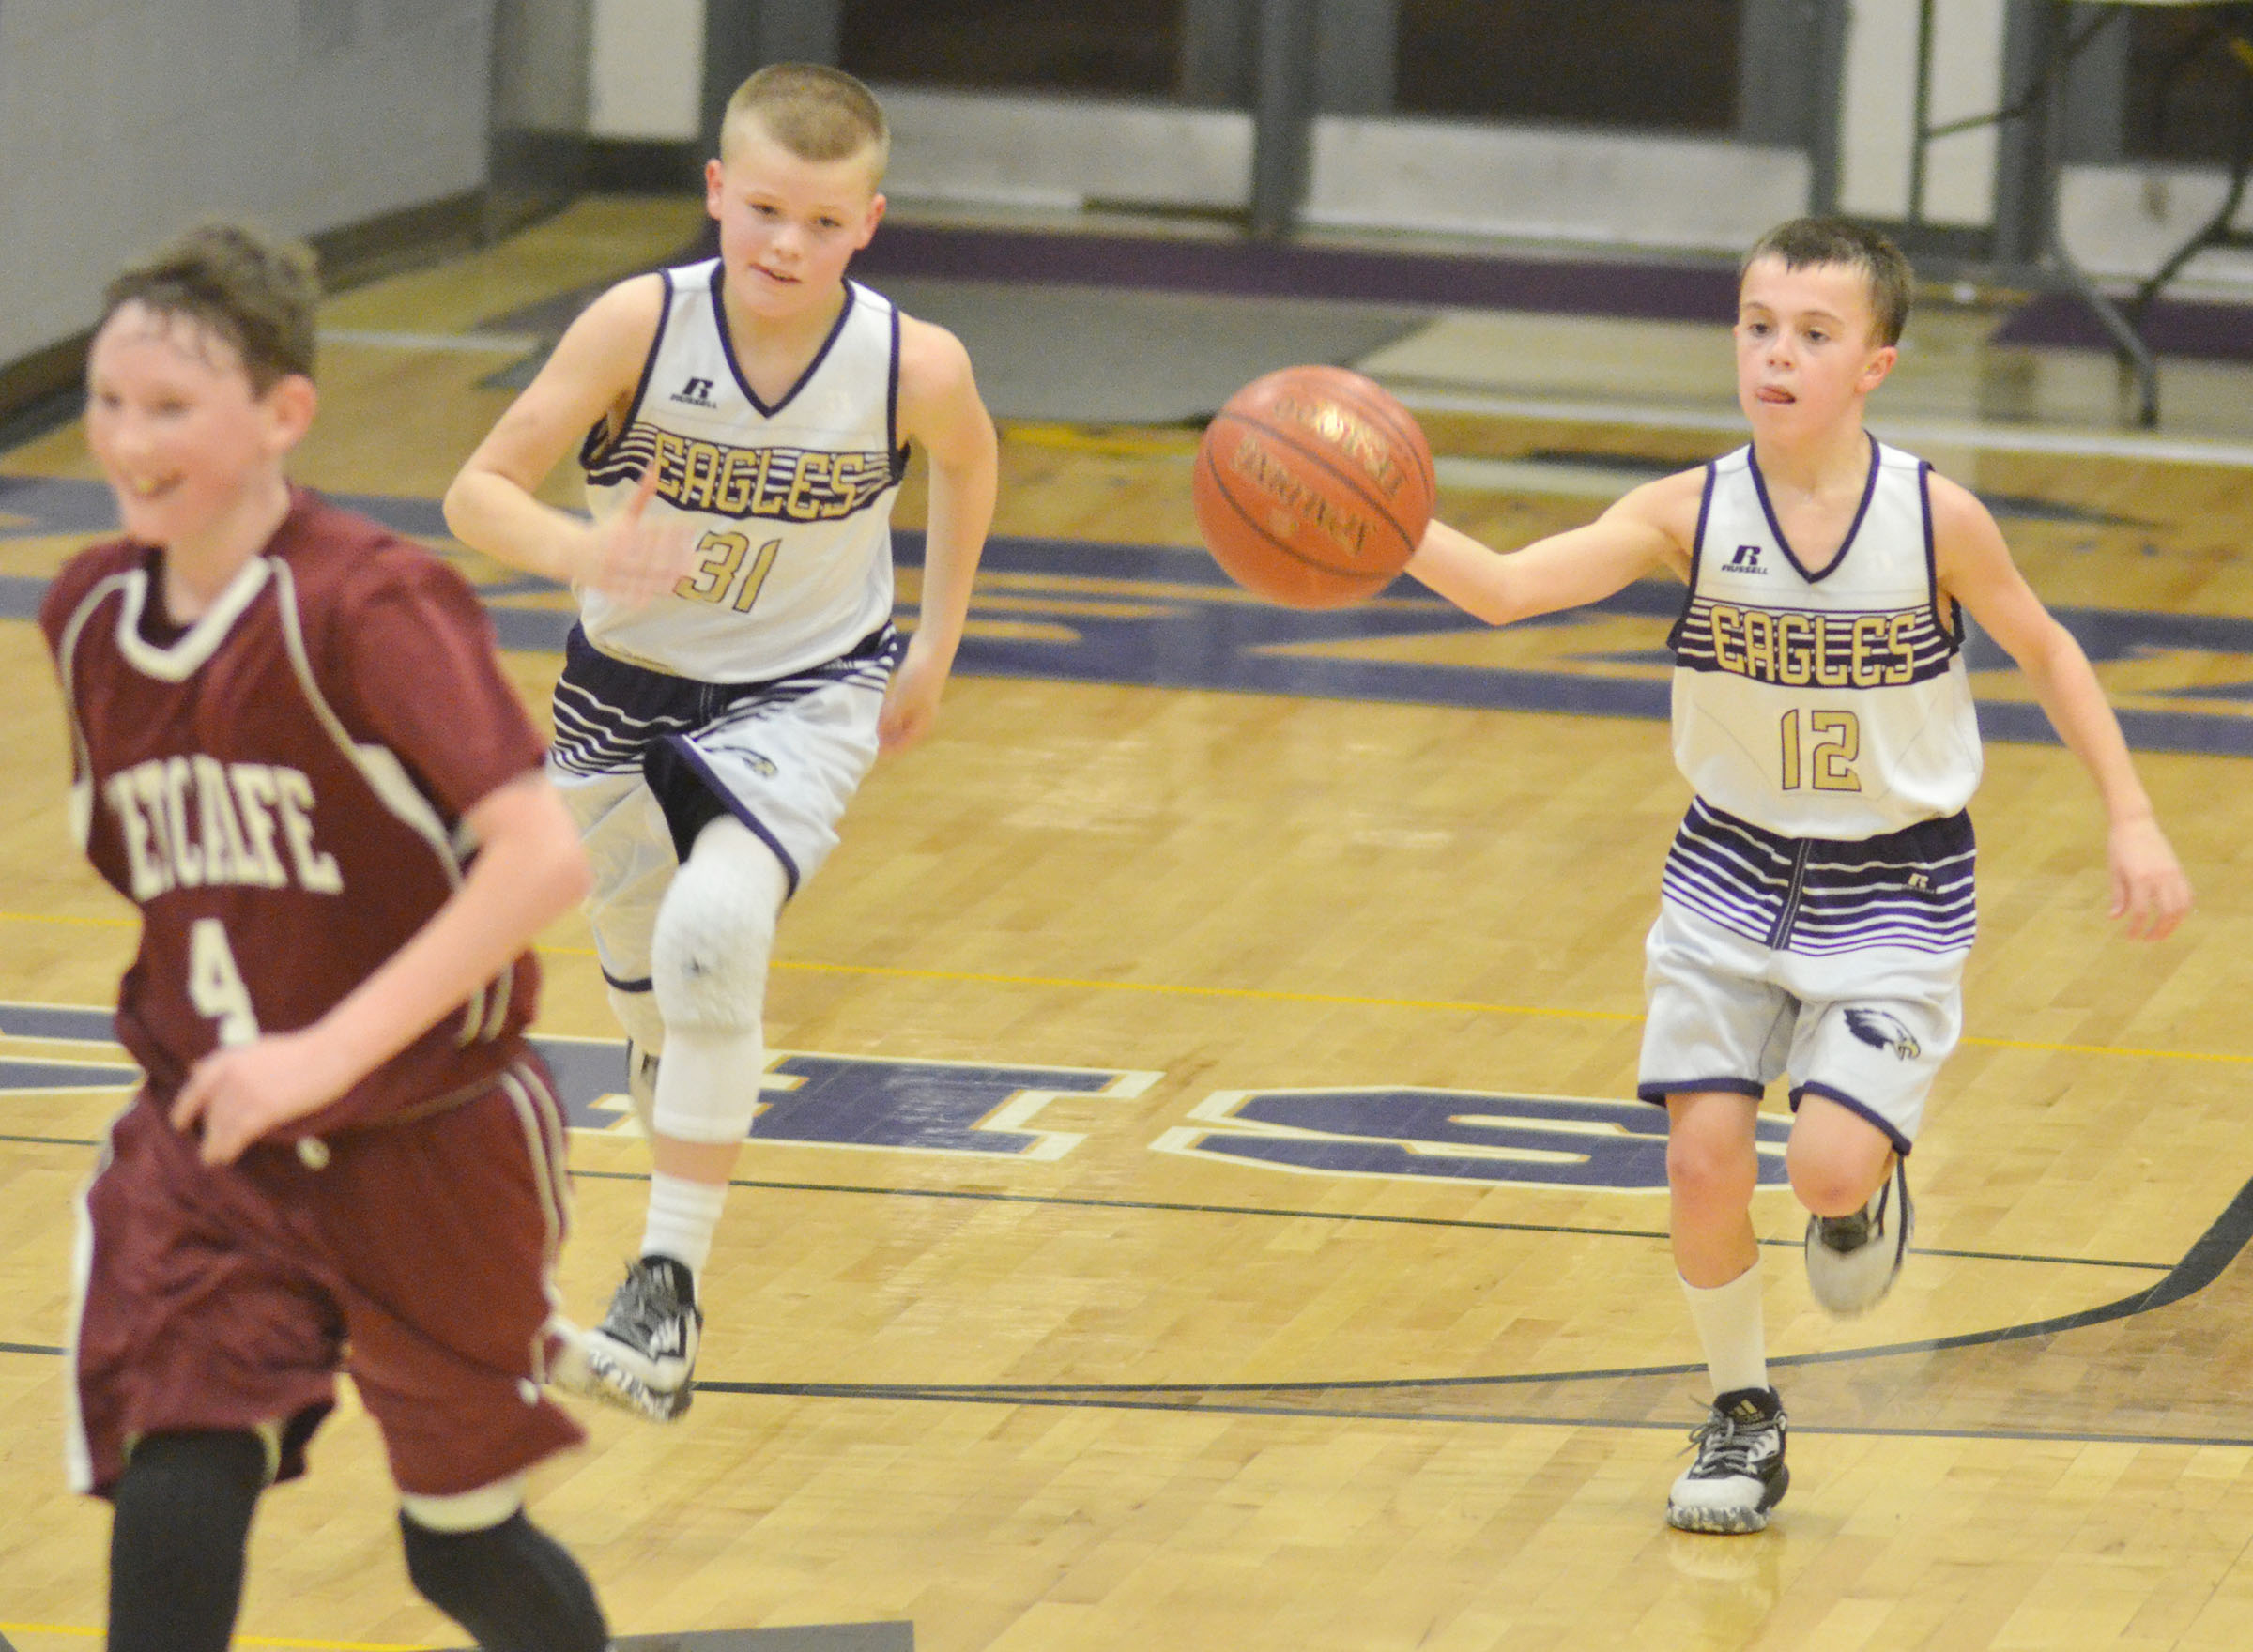 CMS sixth-graders Konner Forbis, at left, and Chase Hord run to the basket.